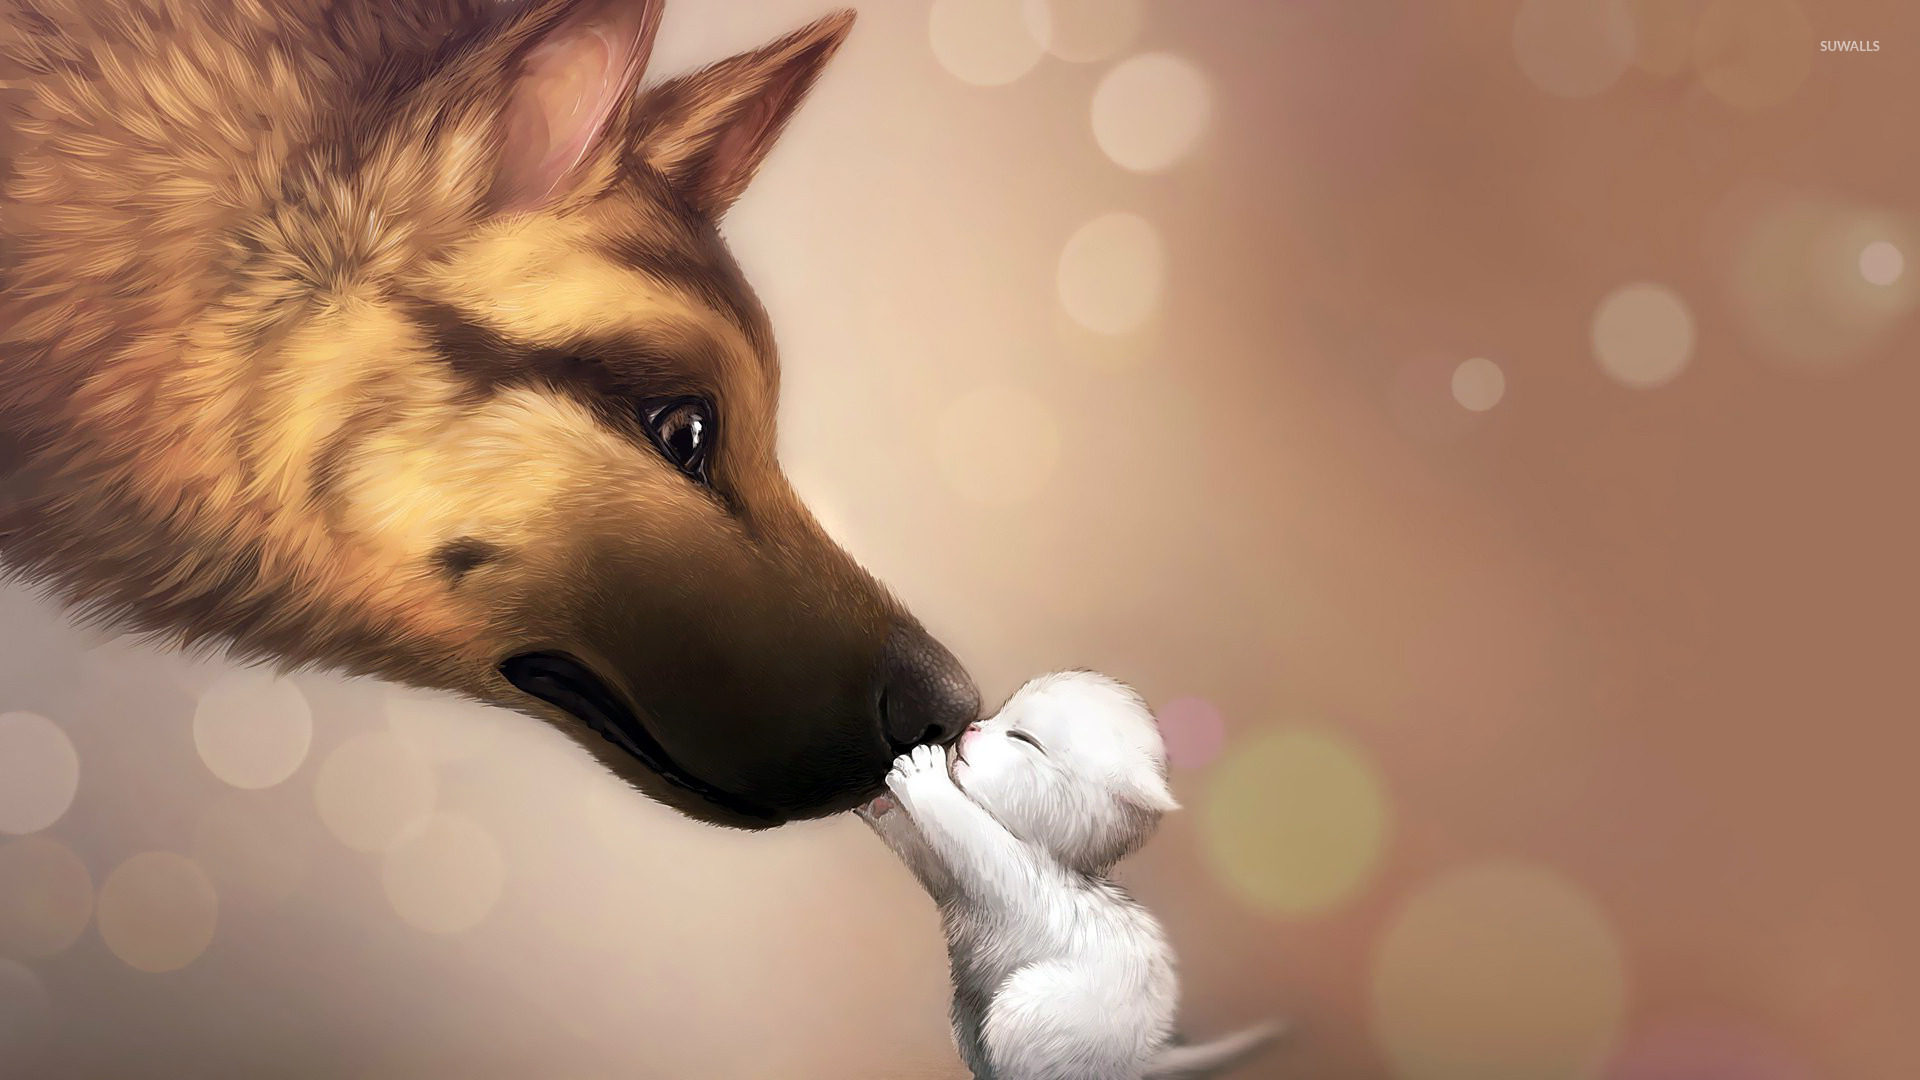 Dog Puppy Wallpaper Digital Art Wallpapers 15231